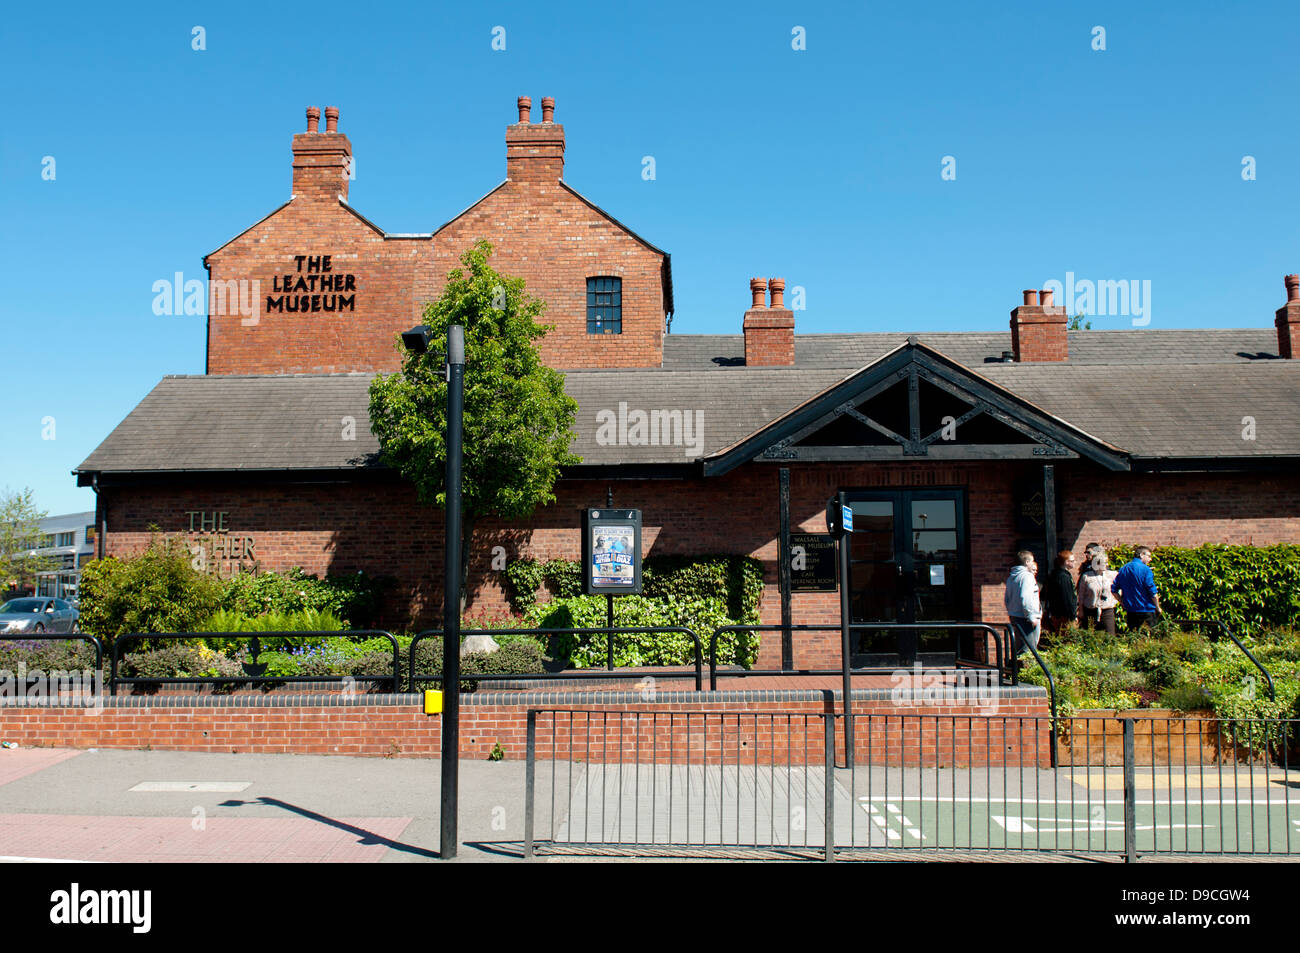 The Leather Museum, Walsall, West Midlands, England, UK - Stock Image